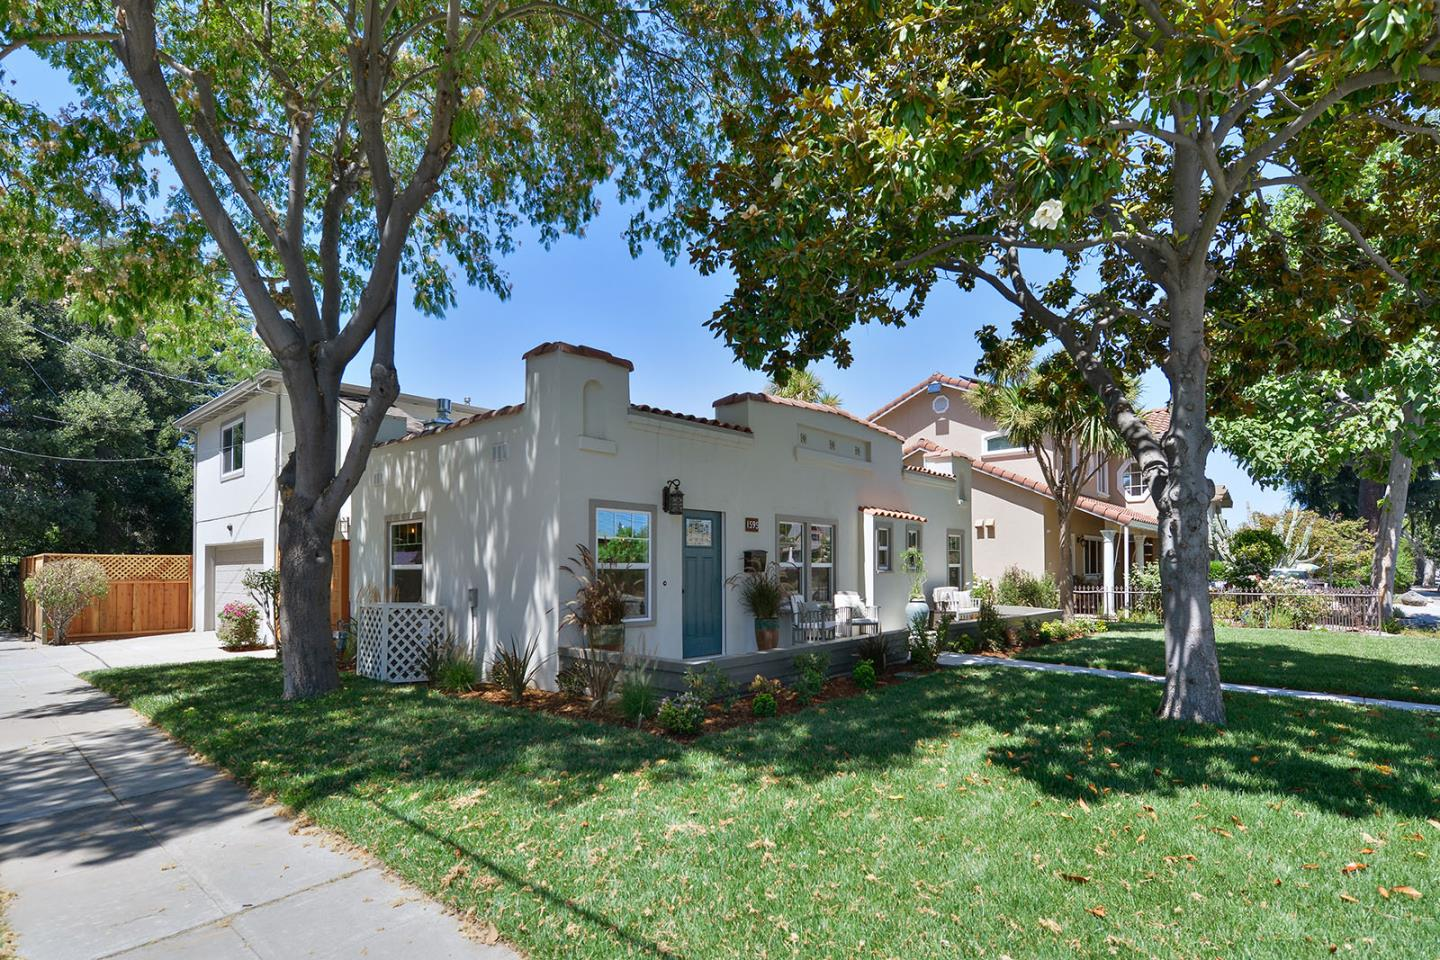 Additional photo for property listing at 1595 Mckendrie Street  San Jose, California 95126 United States